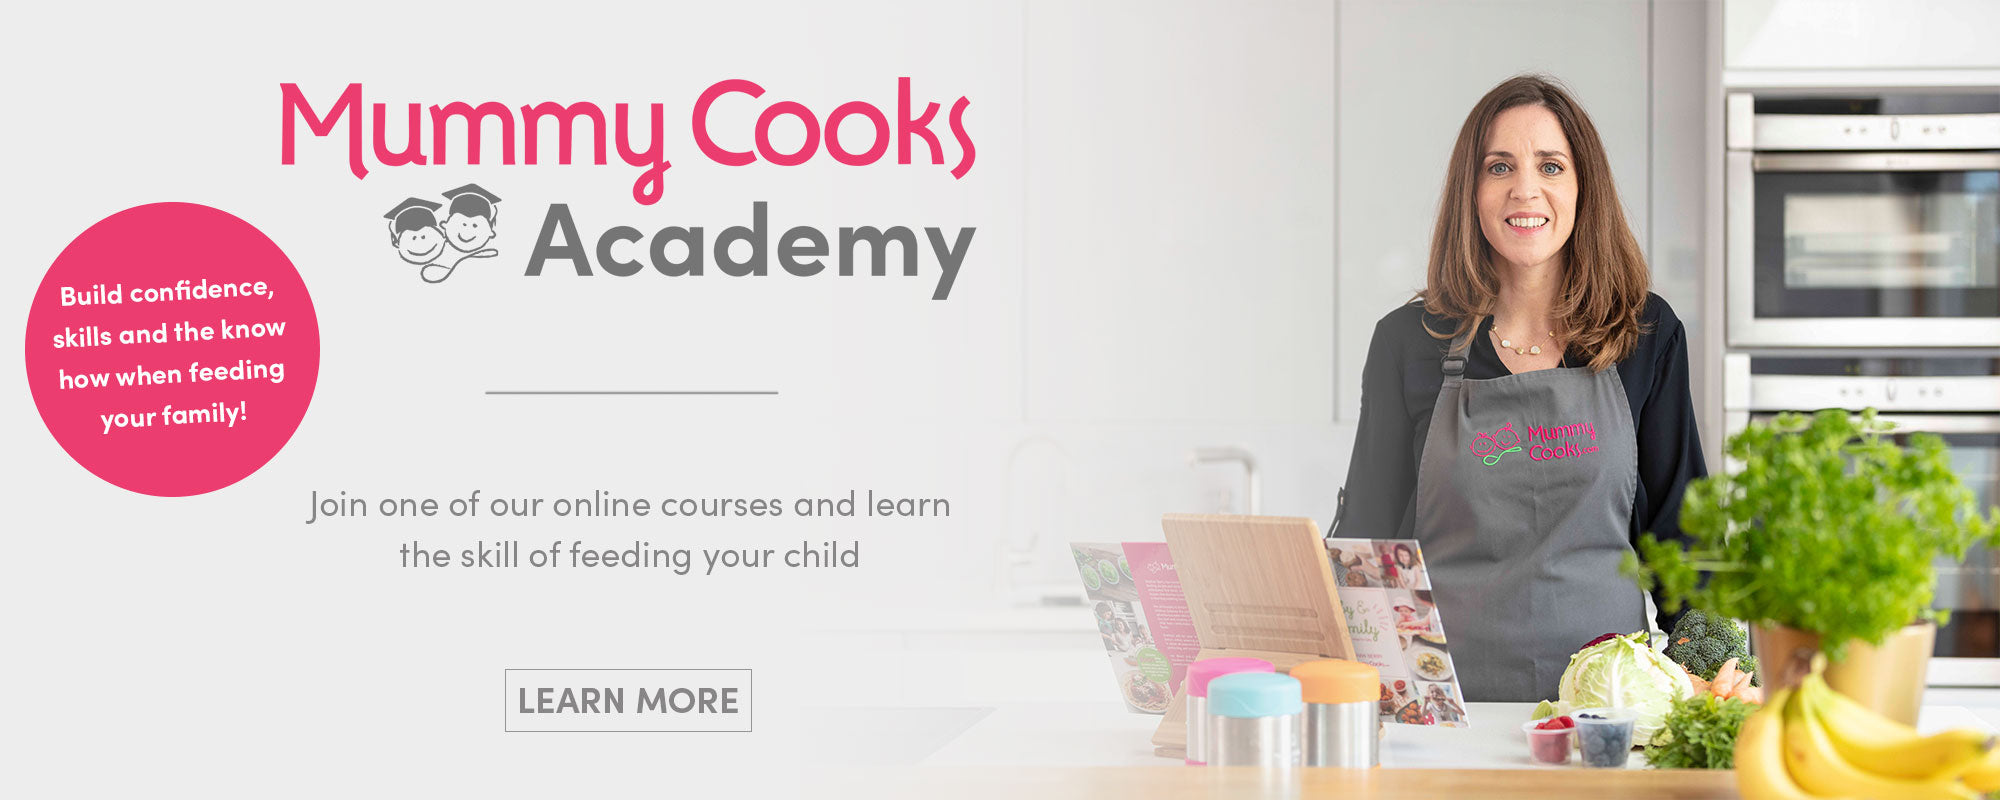 https://www.mummycooks.com/pages/mummy-cooks-academy-starting-your-babys-feeding-journey